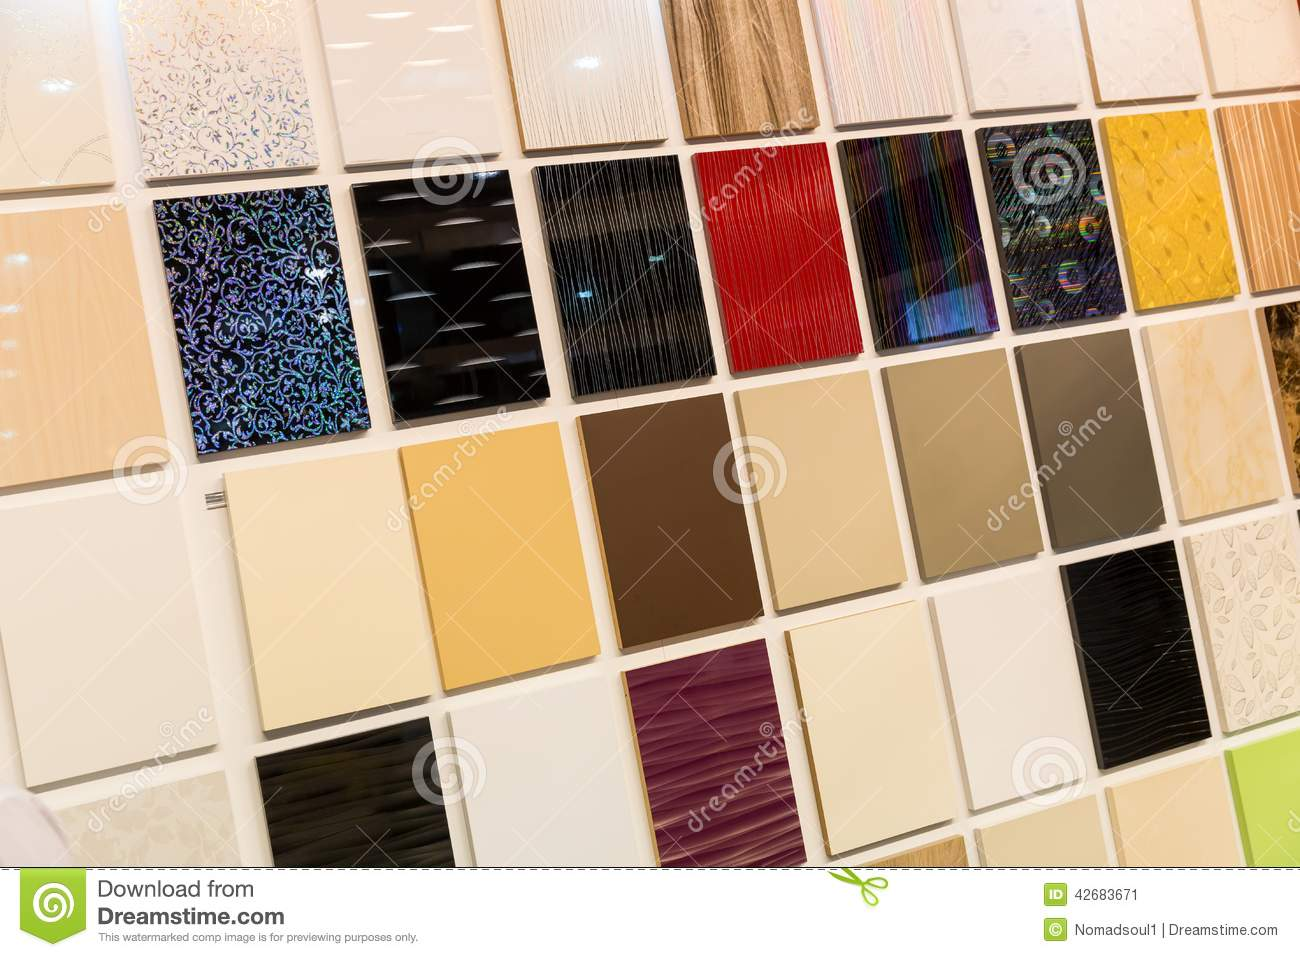 Samples Of A Ceramic Tile In Shop Stock Image - Image: 42683671